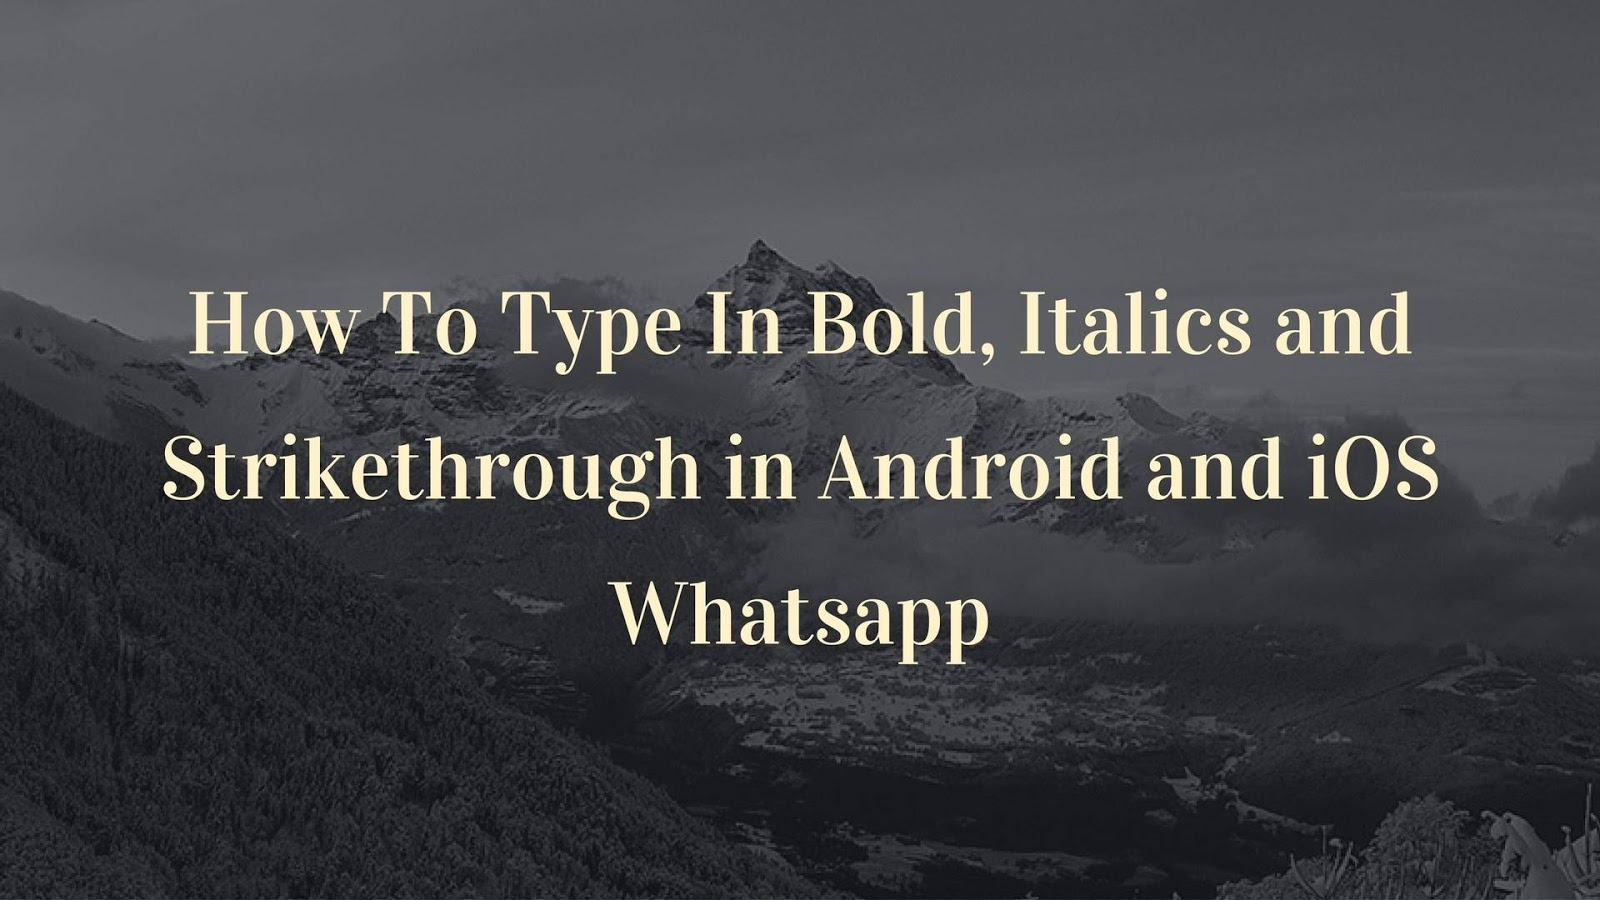 How To Type In Bold, Italics and Strikethrough in Android and iOS Whatsapp